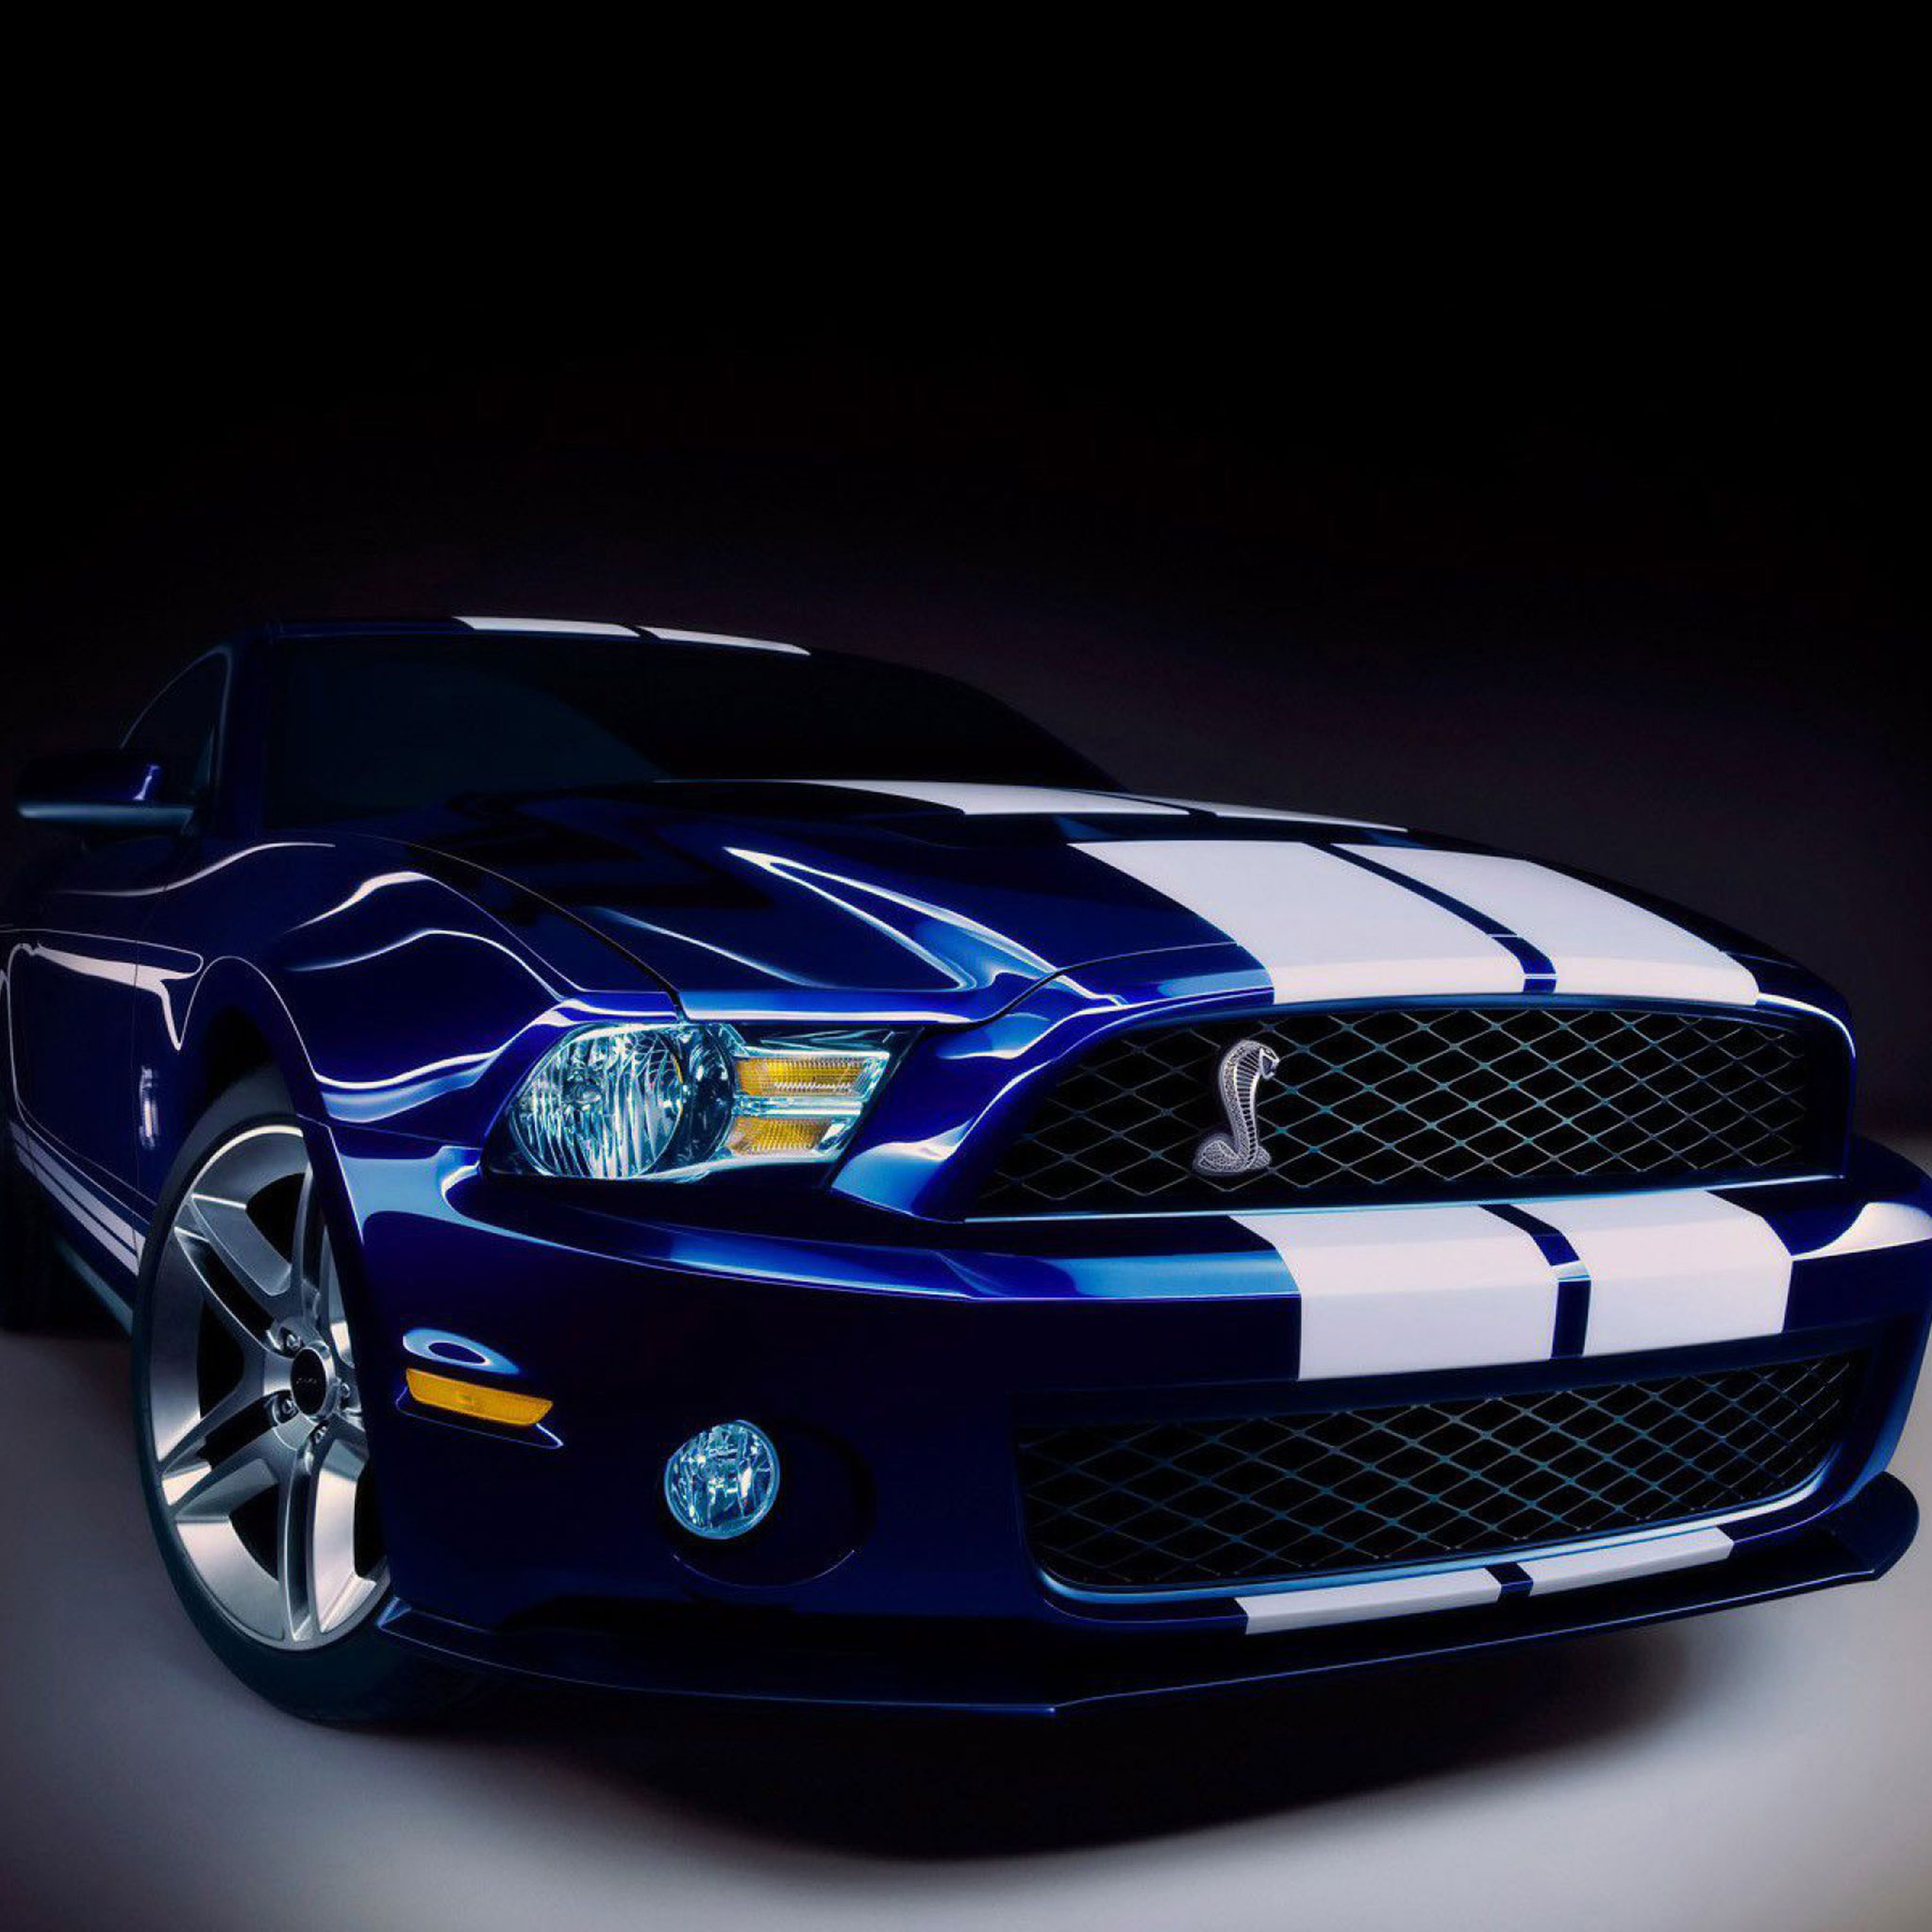 20 HD Car IPad Wallpapers